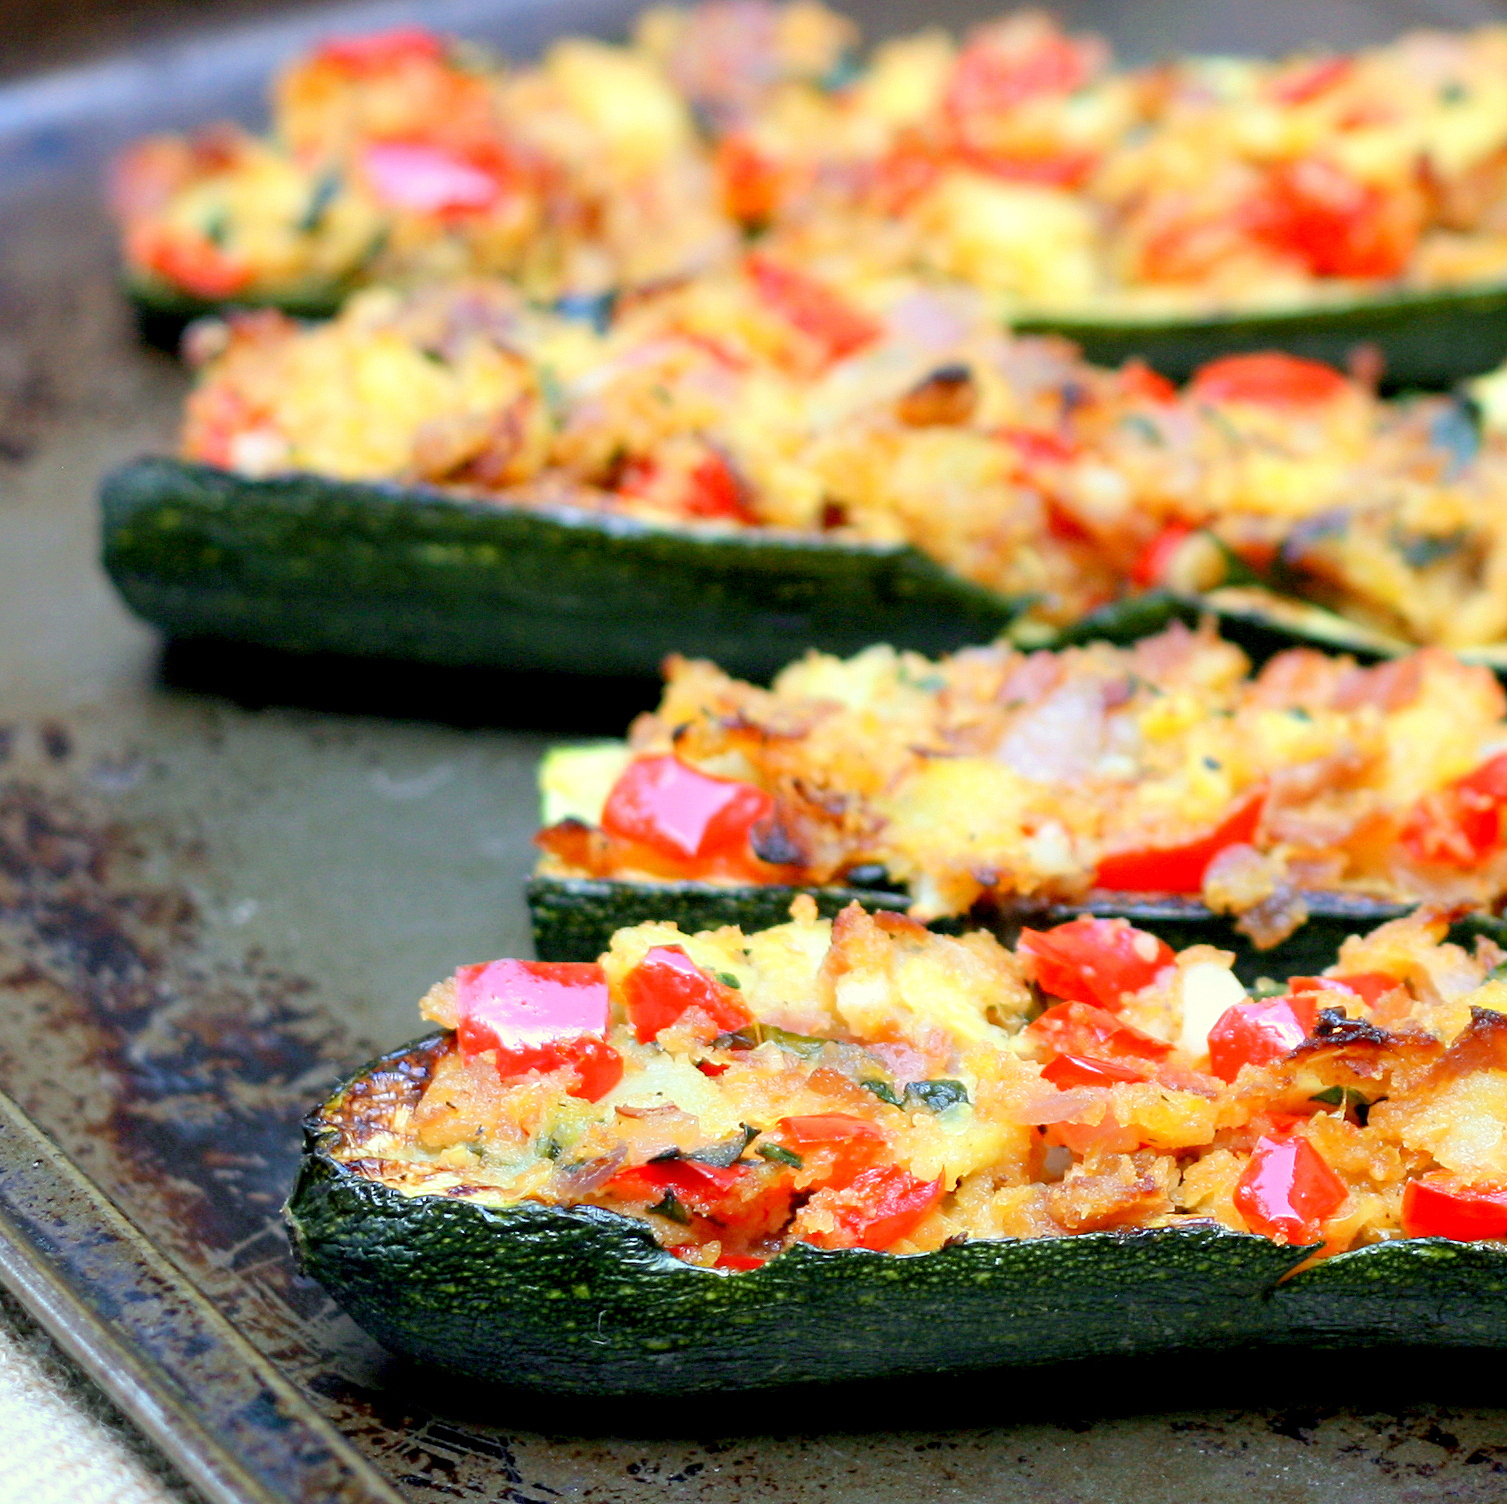 Mix it Up: Stuffed Zucchini Boats